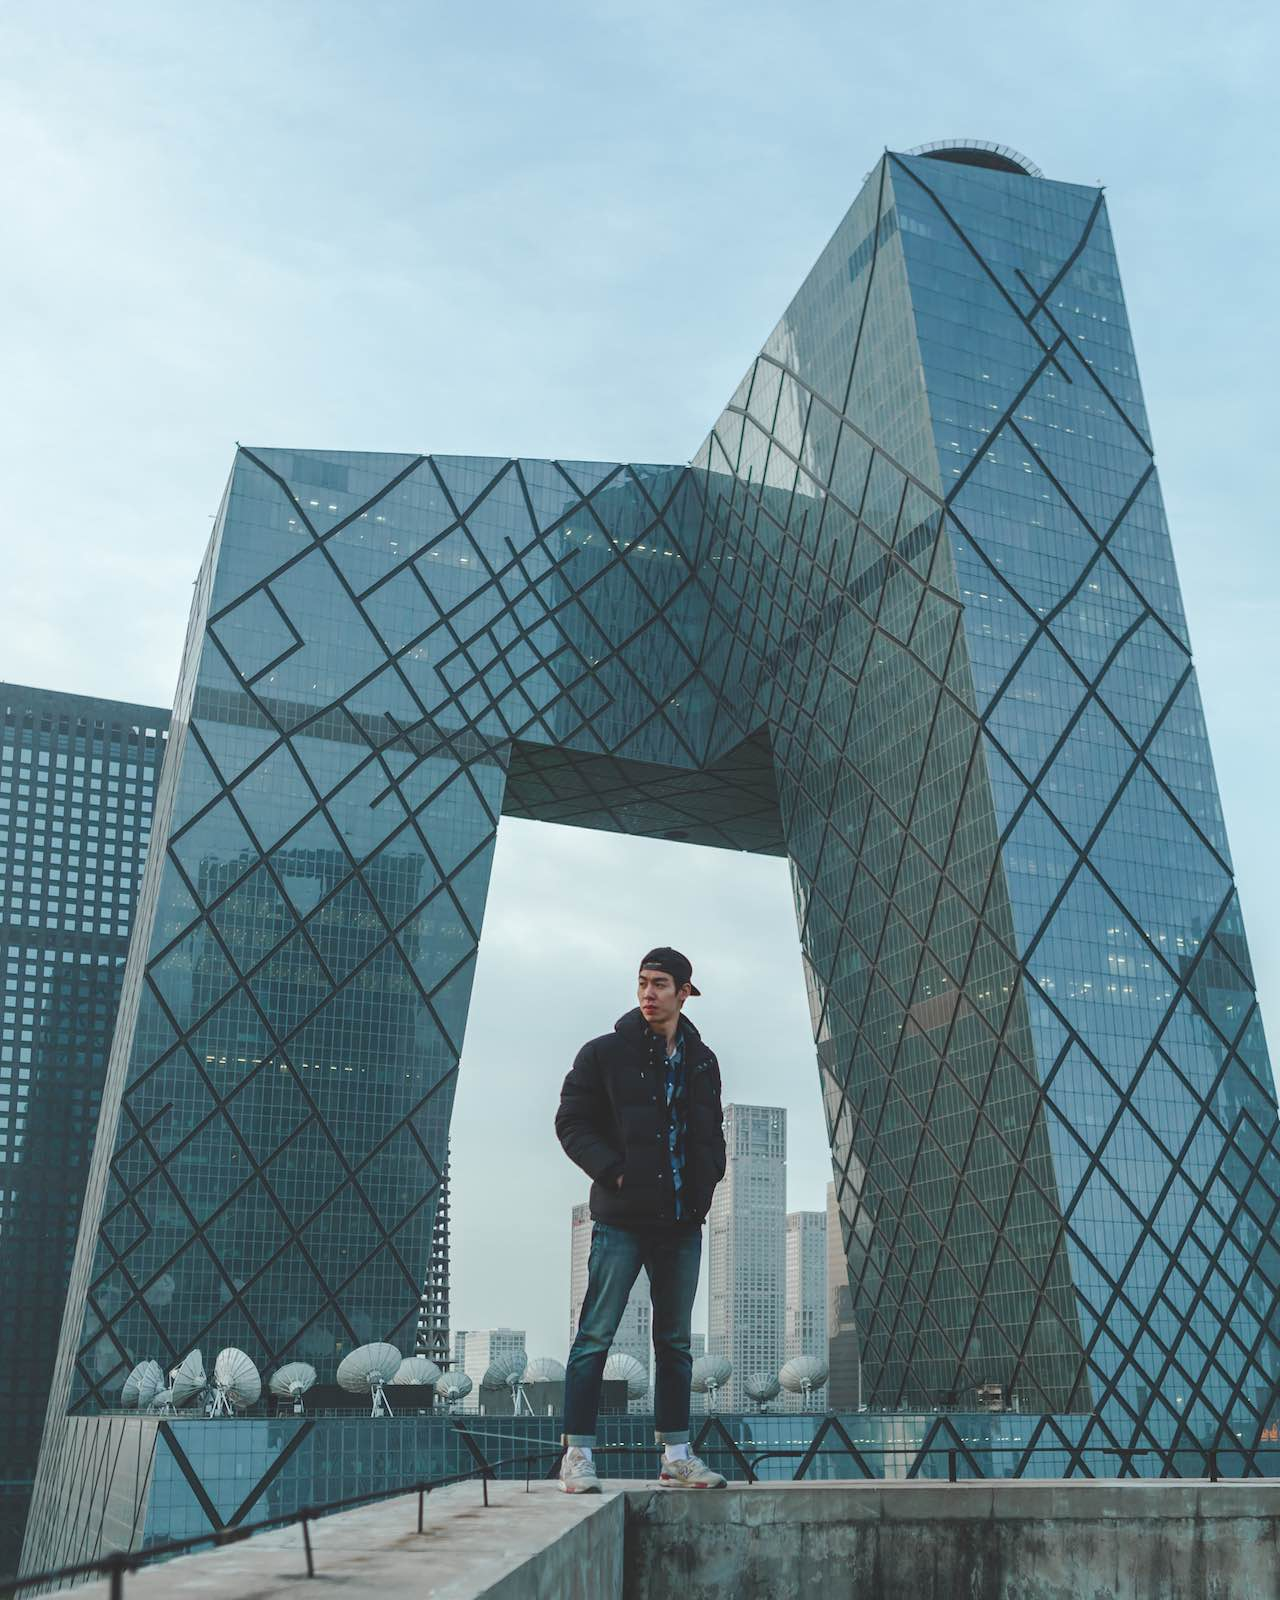 CCTV Headquarters | Photo: Raj Eiamworakul